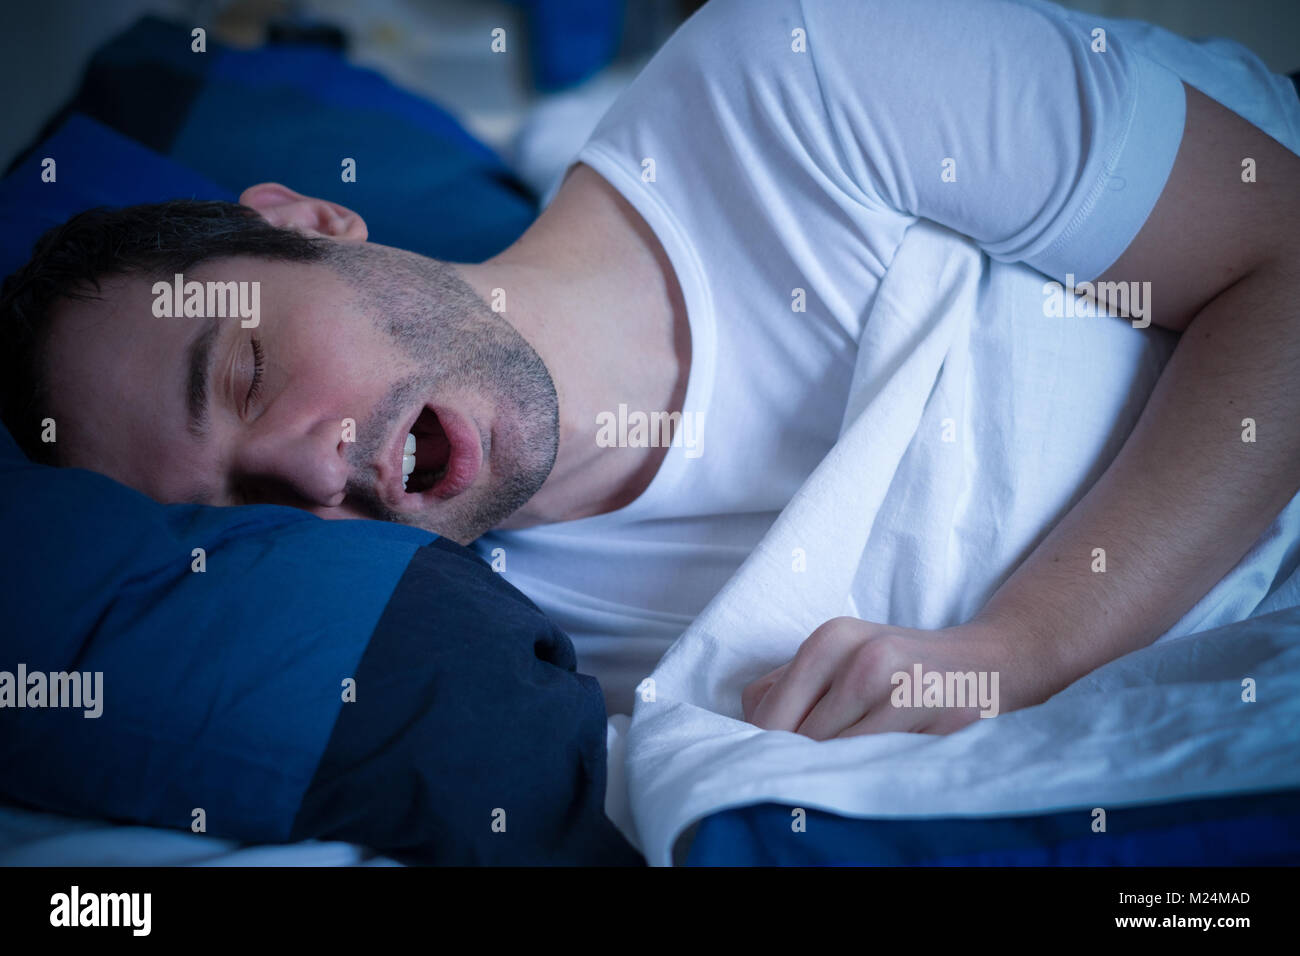 Portrait of man sleeping and snoring loudly lying in the bed - Stock Image